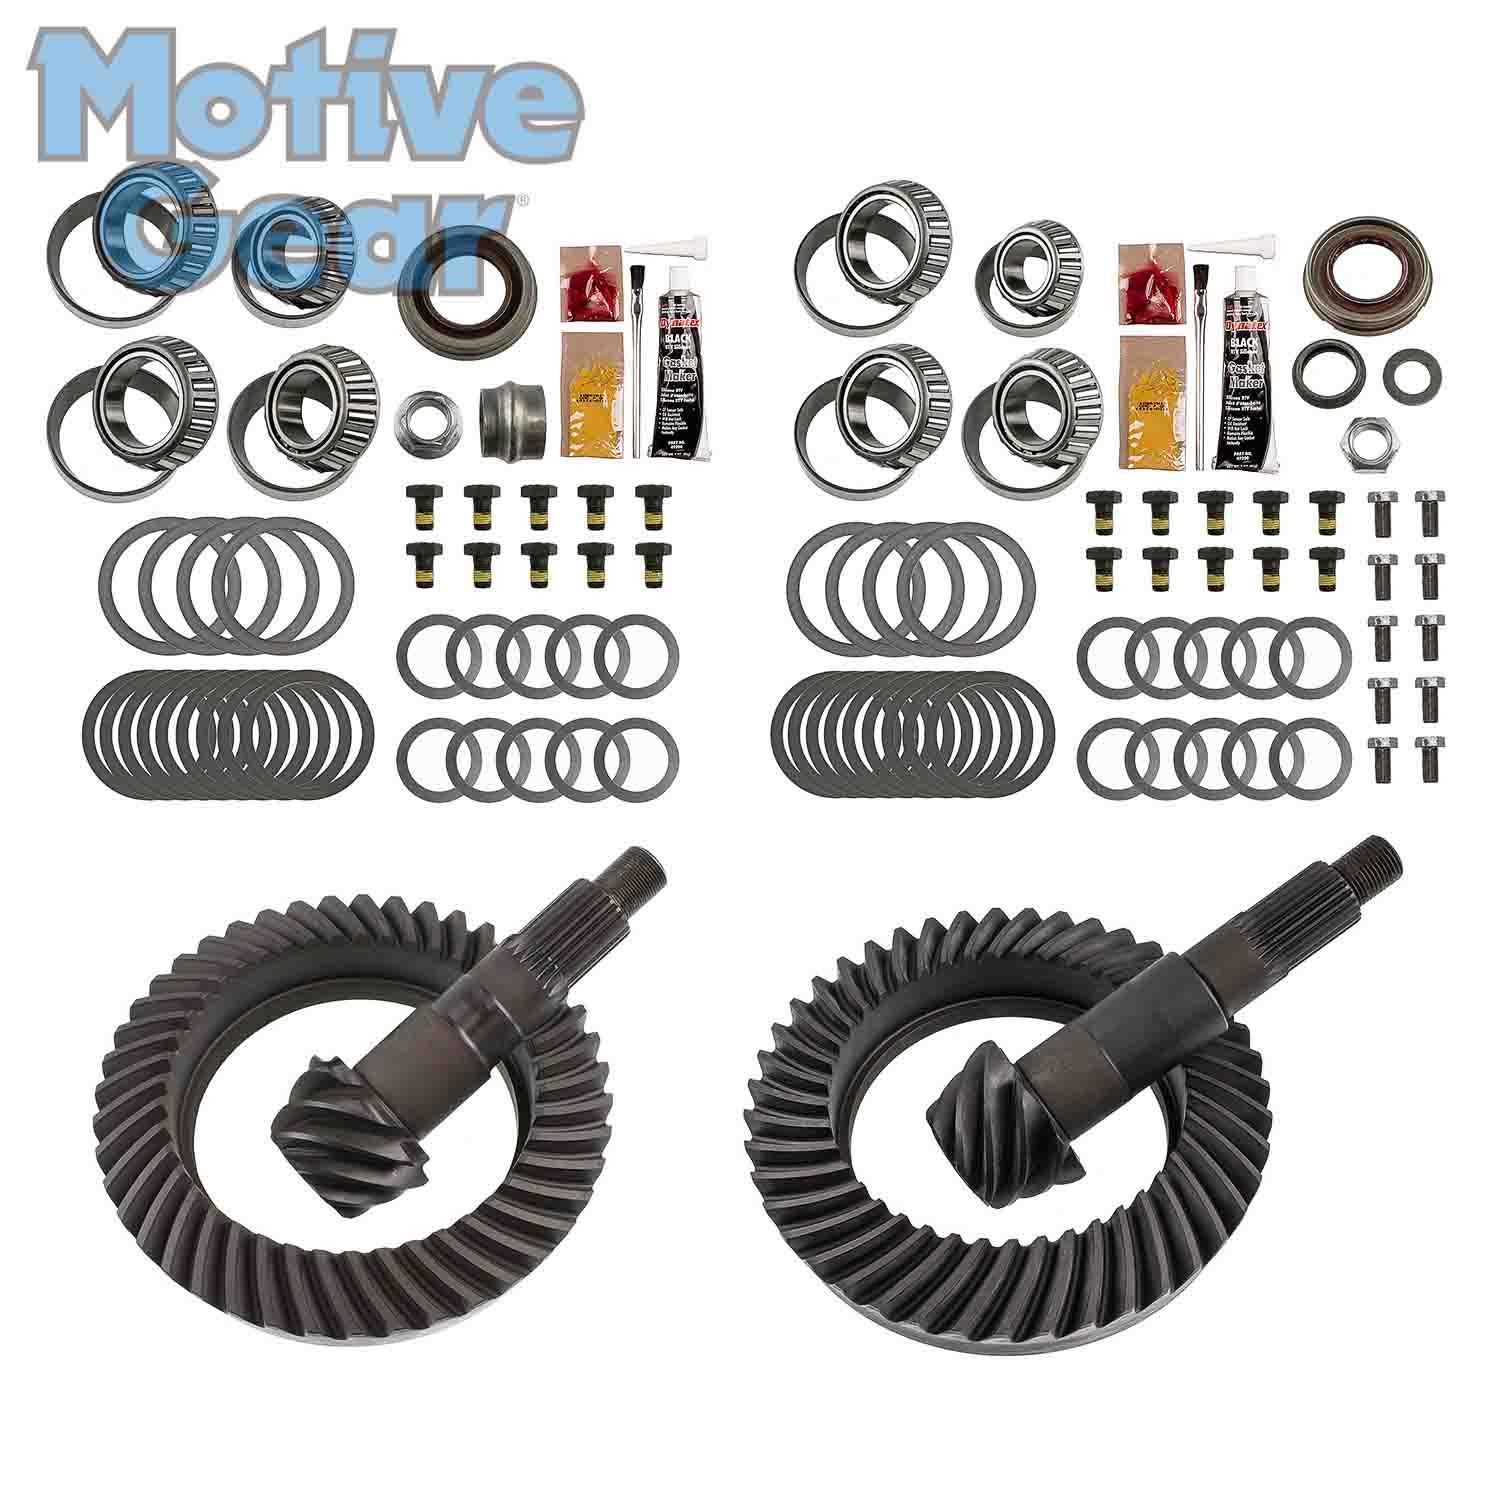 MGK-108 Motive Gear/Midwest Truck Differential Ring and Pinion DANA